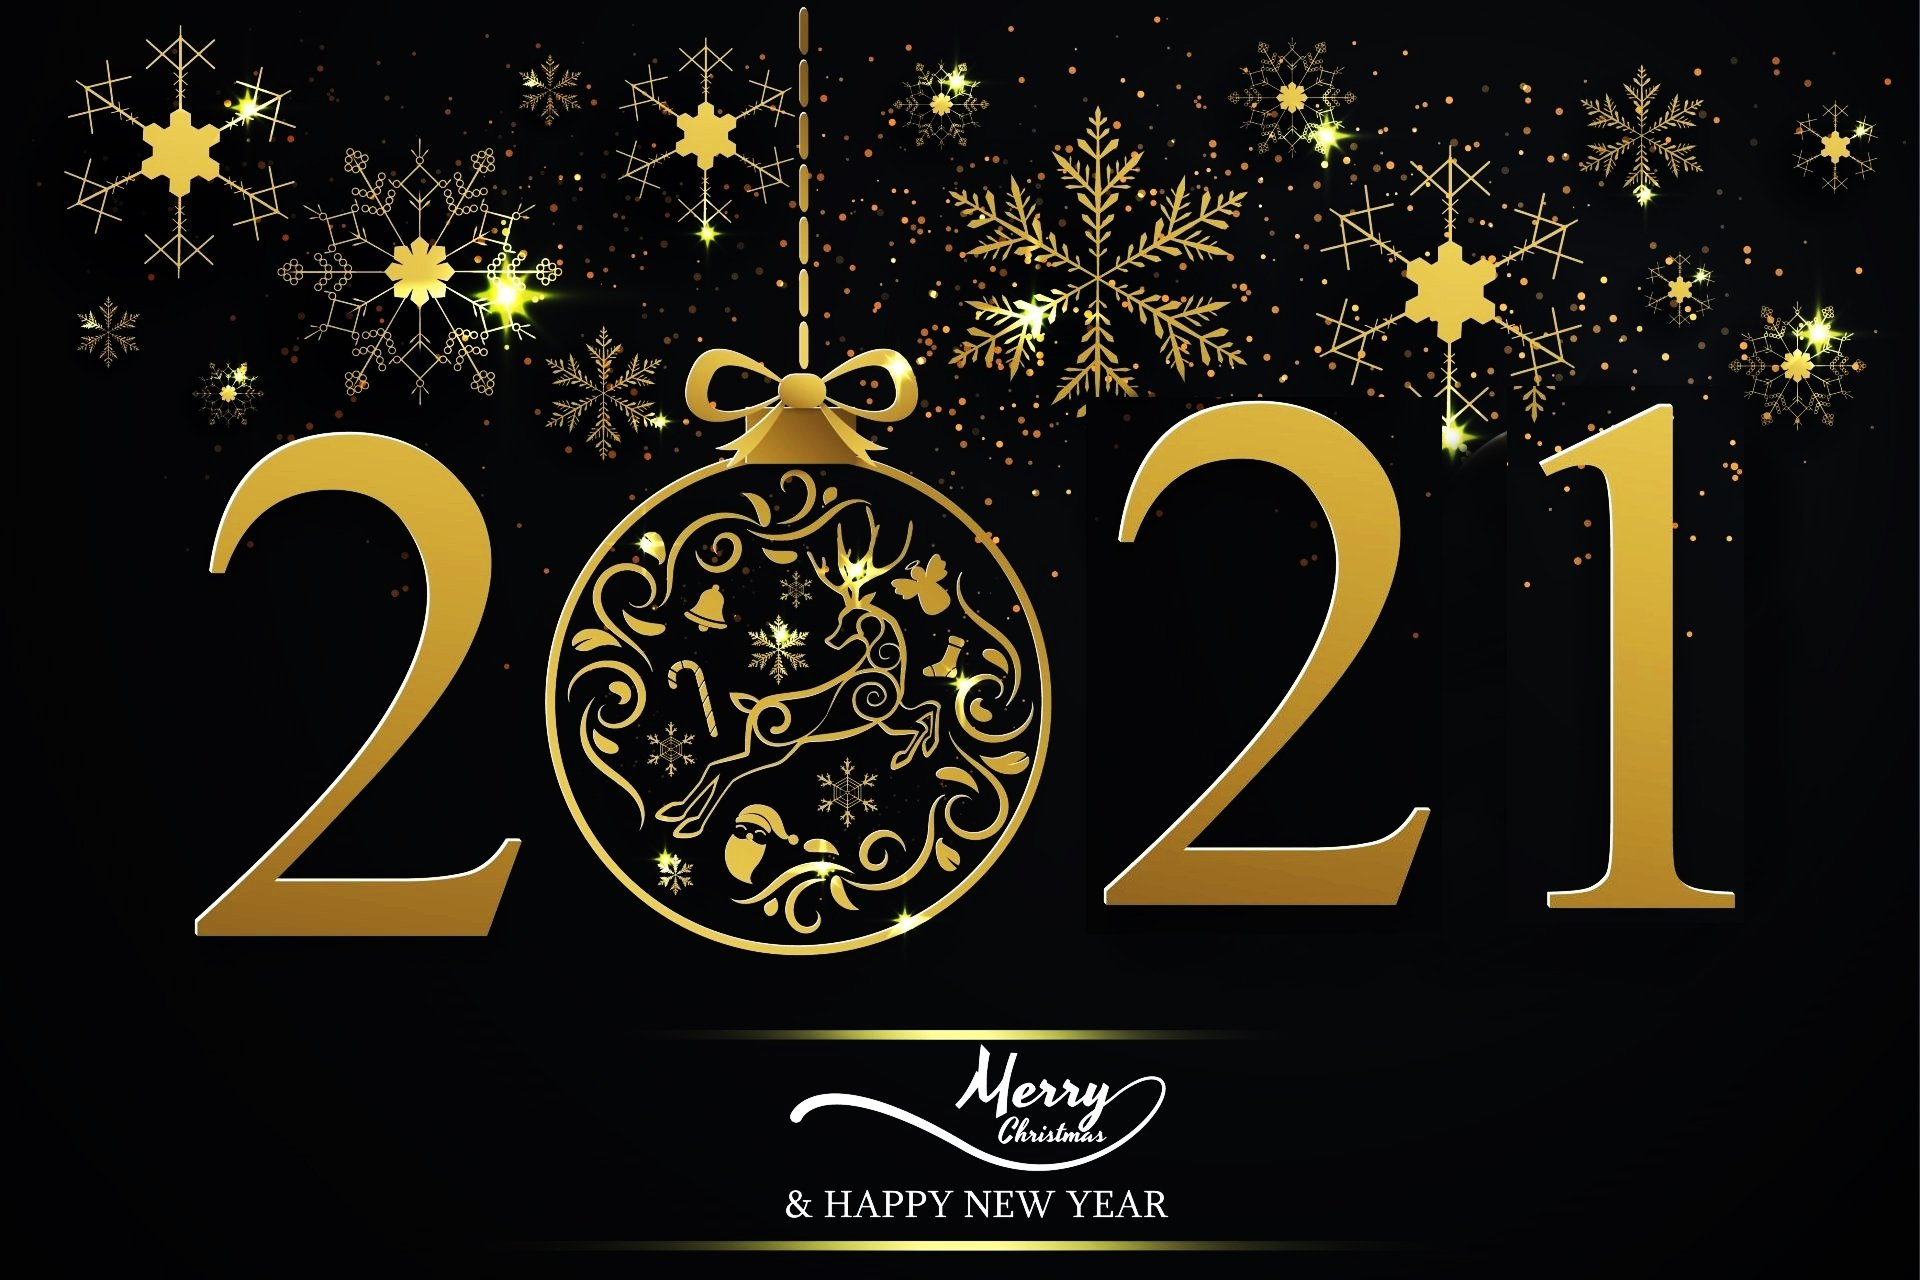 Happy-New-Year-Merry-Christmas-2021-Wallpaper